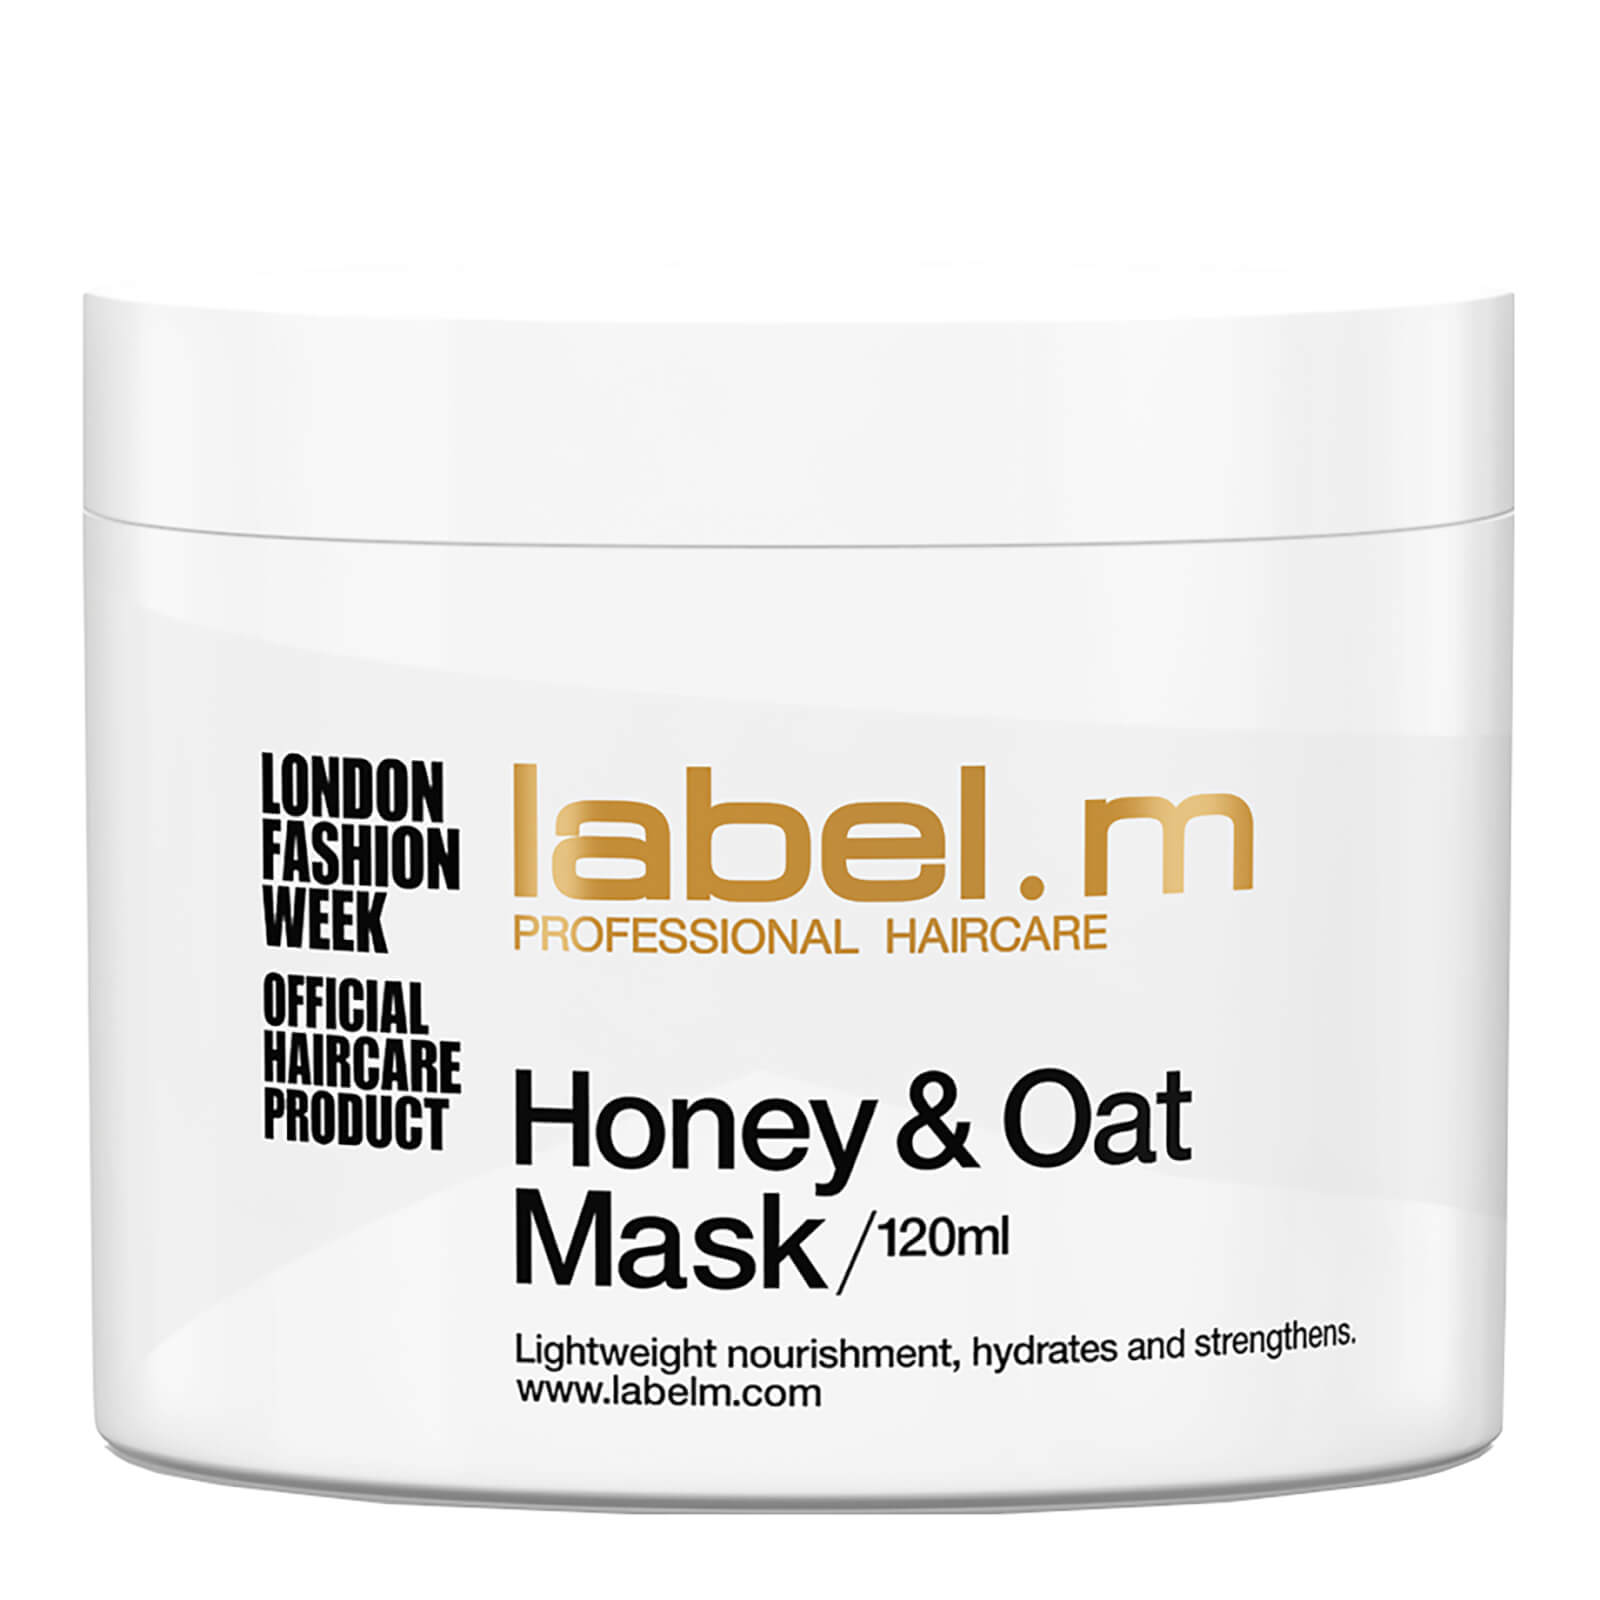 Macarilla hidratatnte Honey& Oat Mask Label M. 120ml. - PDEPELO